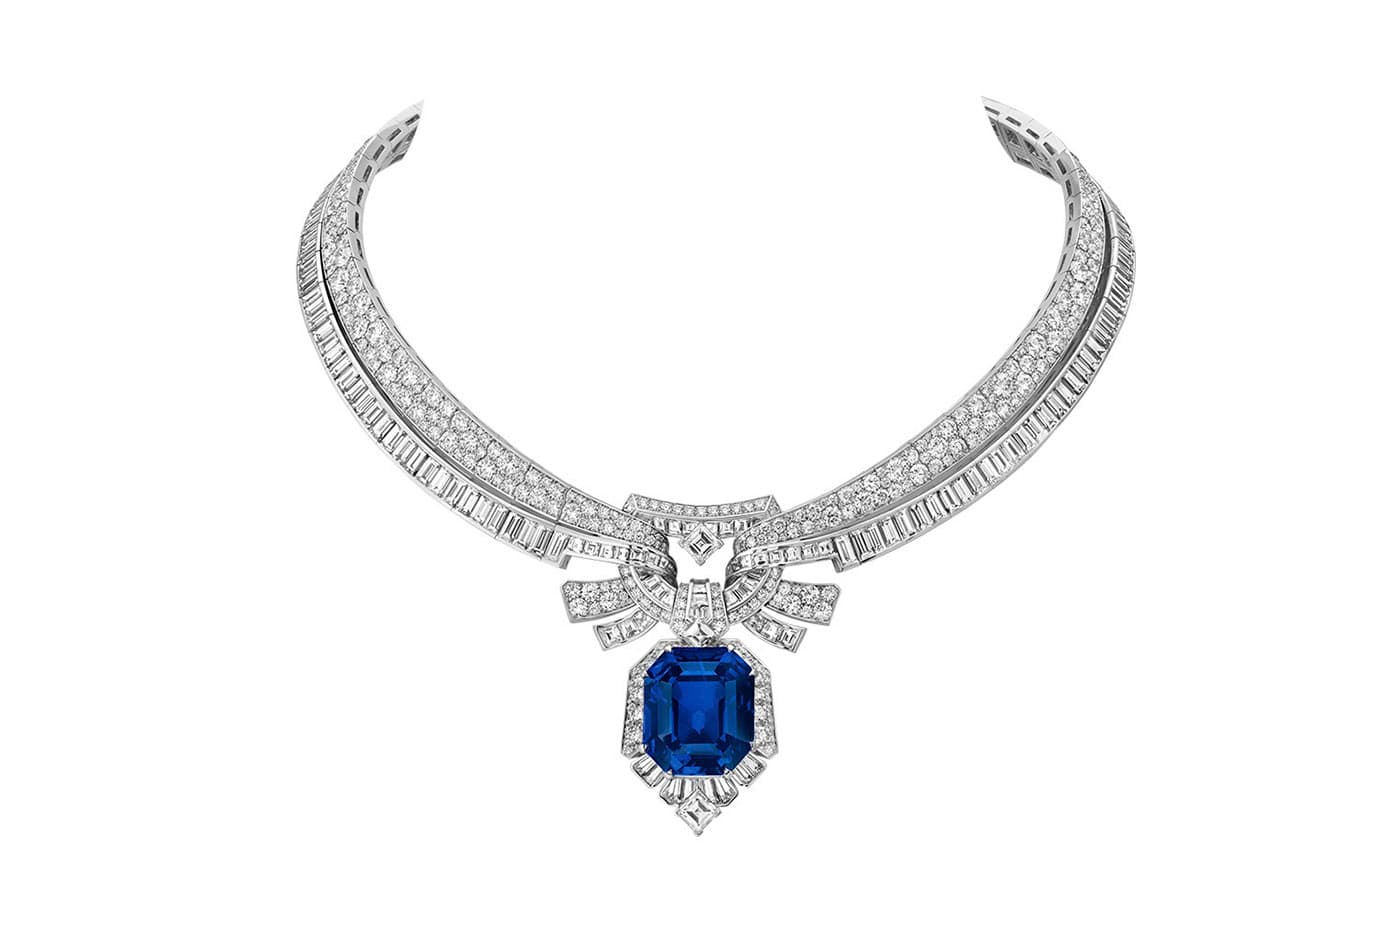 Van Cleef & Arpels 'Romeo and Juliet' collection 'Maiolika' necklace with Sri Lankan emerald cut sapphire of 42.86ct and diamonds in white gold